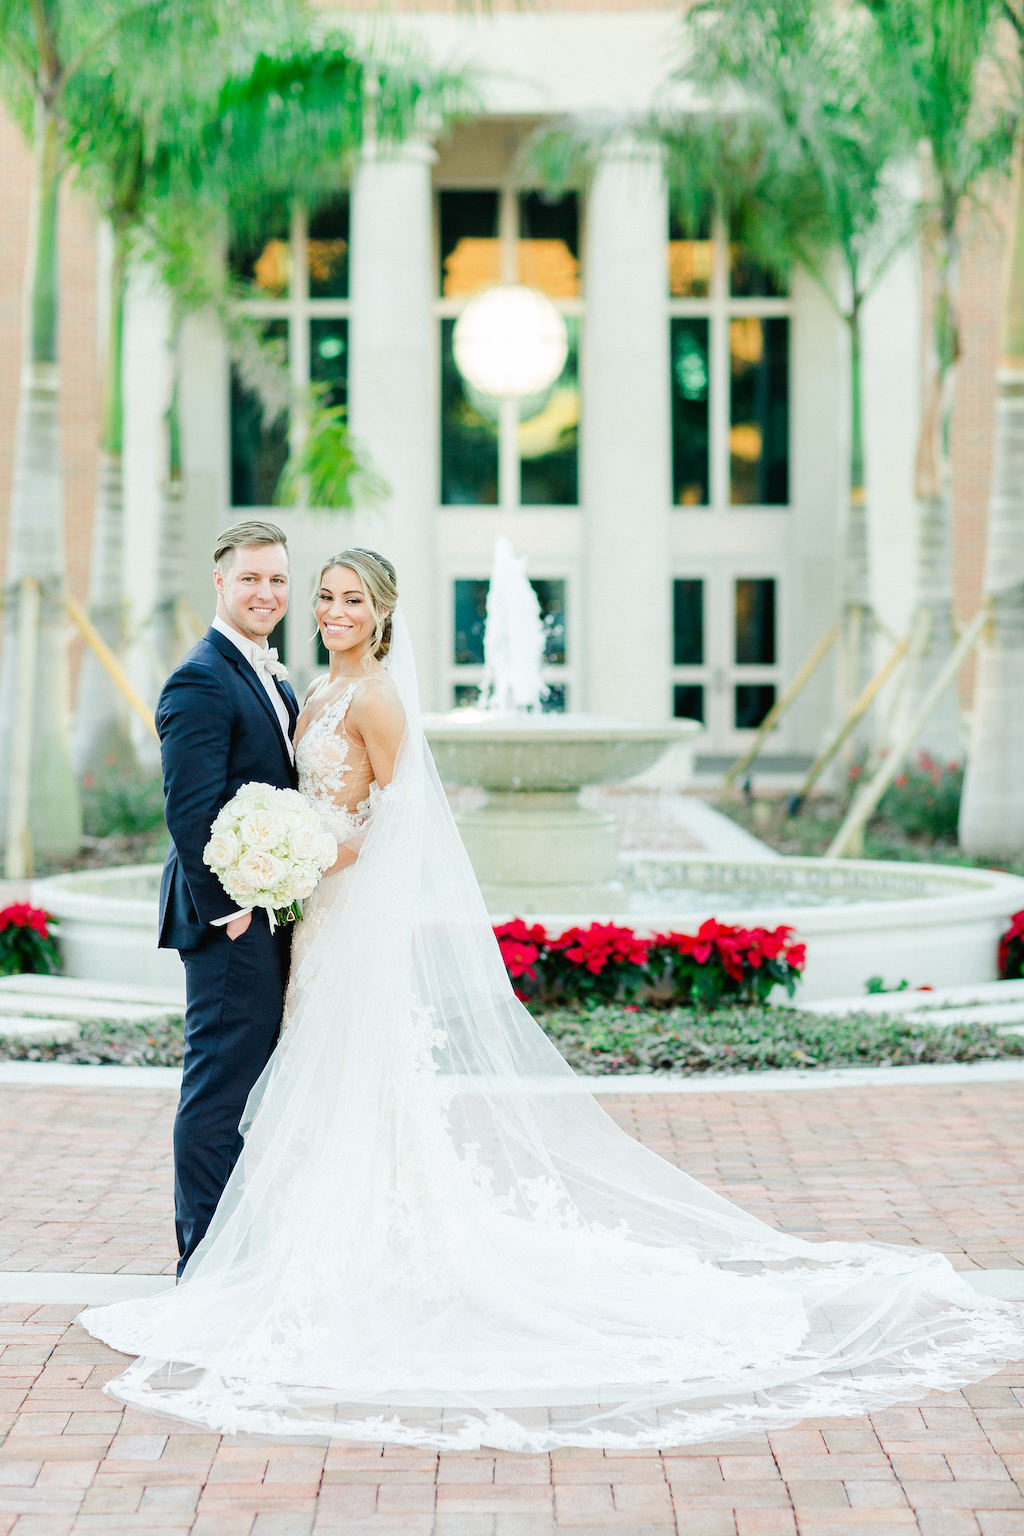 Tampa Bay Outdoor Courtyard Bride and Groom Wedding Portrait, Bride in Long Cathedral Veil and Ivory Rose Floral Bouquet